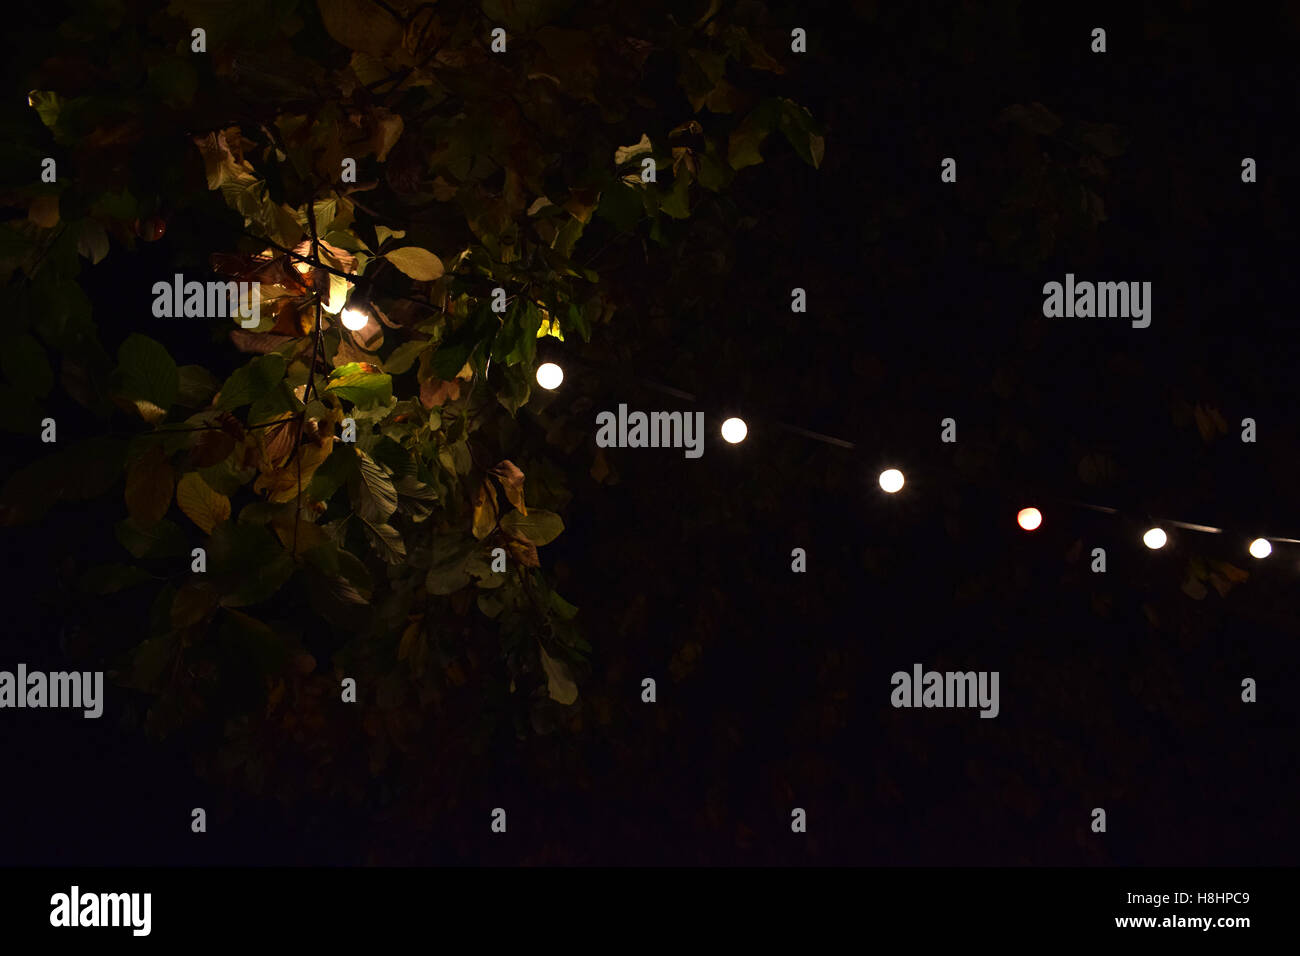 Fairy lights outdoors stock photos fairy lights outdoors stock outdoors lights and leaves stock image mozeypictures Gallery